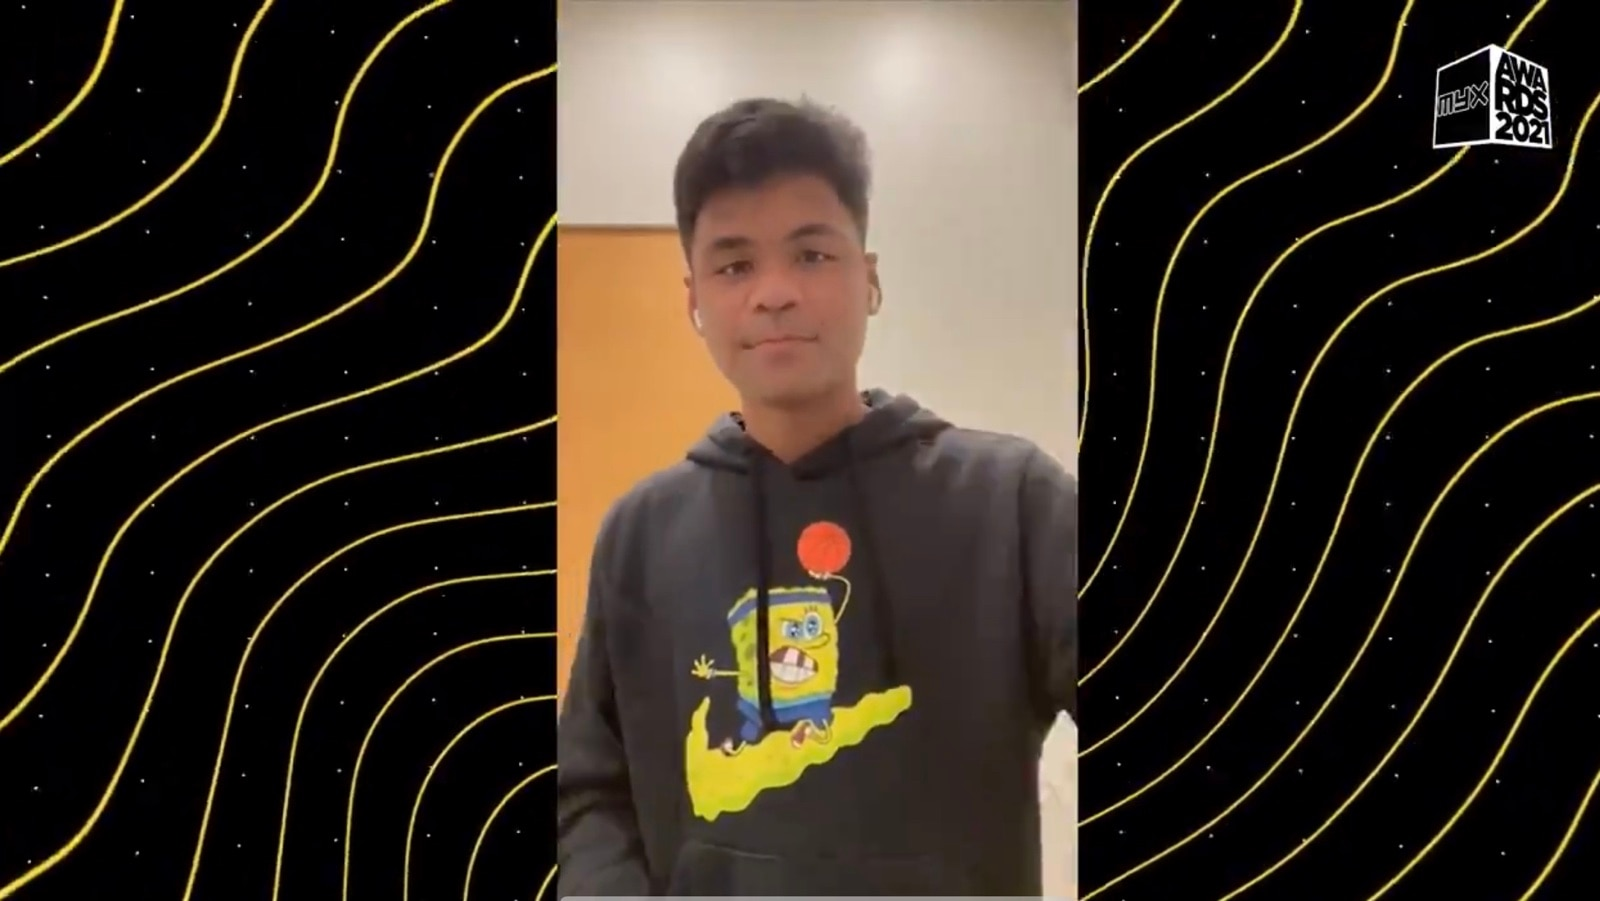 R&B Hip Hop Video of the Year goes to Love by Michael Pacquaio